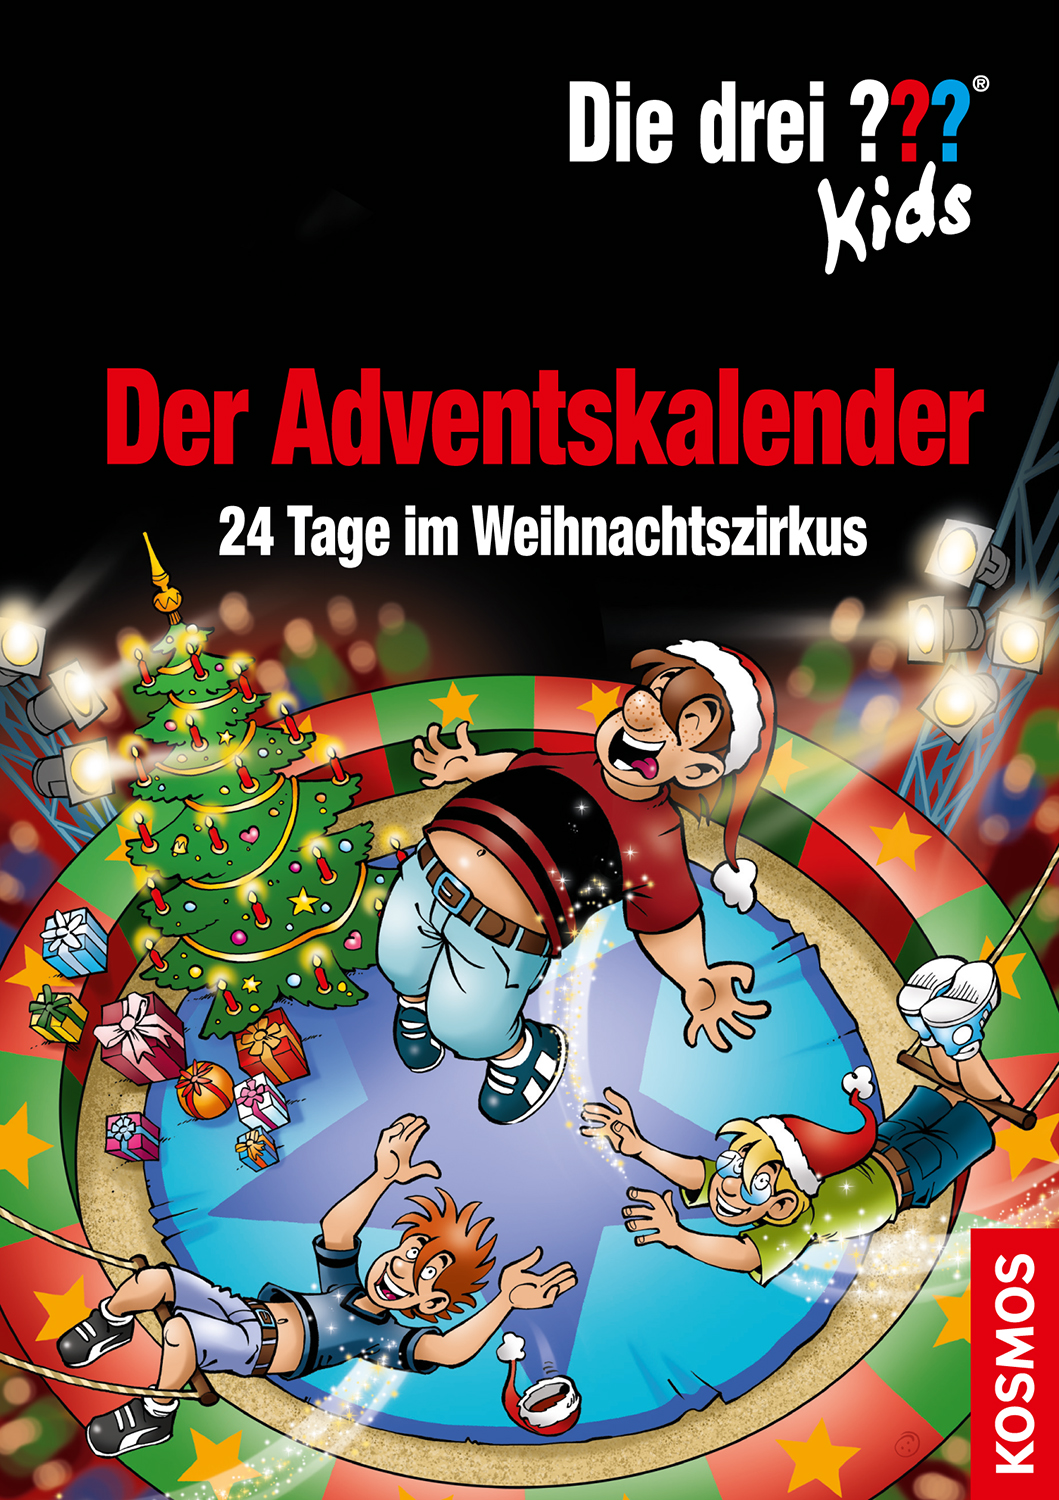 Kids, Der Adventskalender